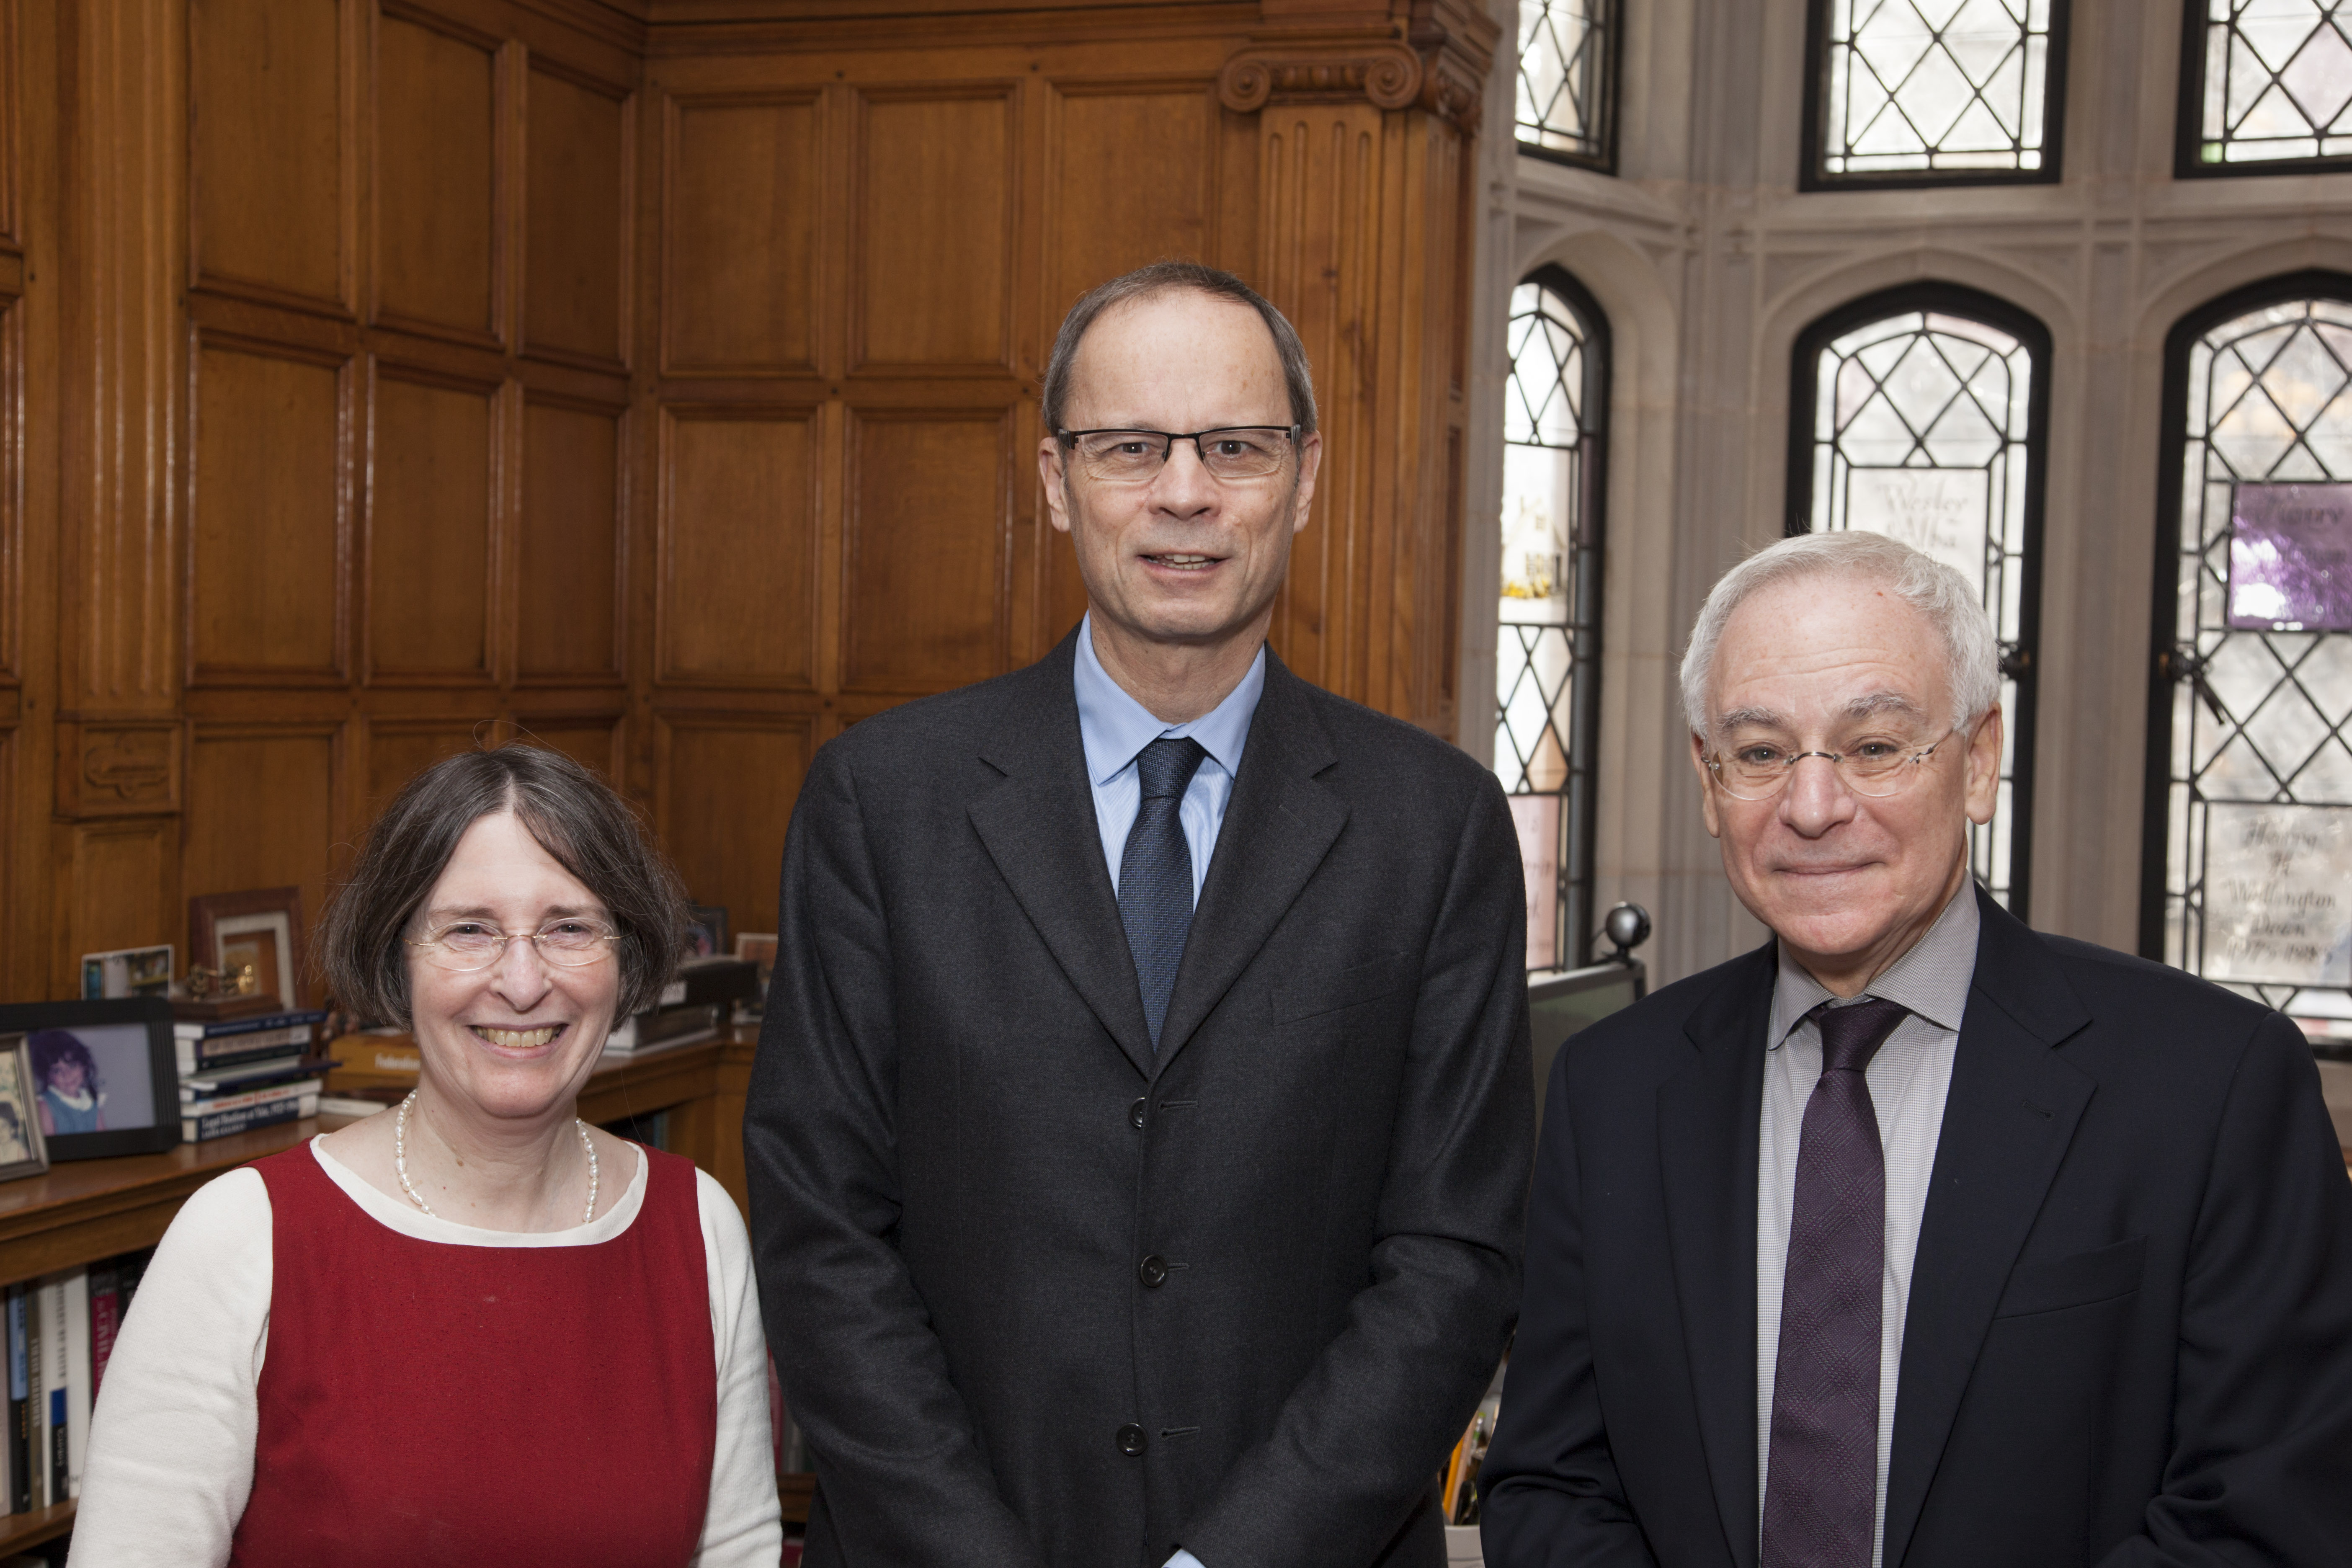 YLS Prof. and Center Dir. Roberta Romano '80, Toulouse School of Economics Prof. Jean Tirole, and YLS Dean Robert Post '77